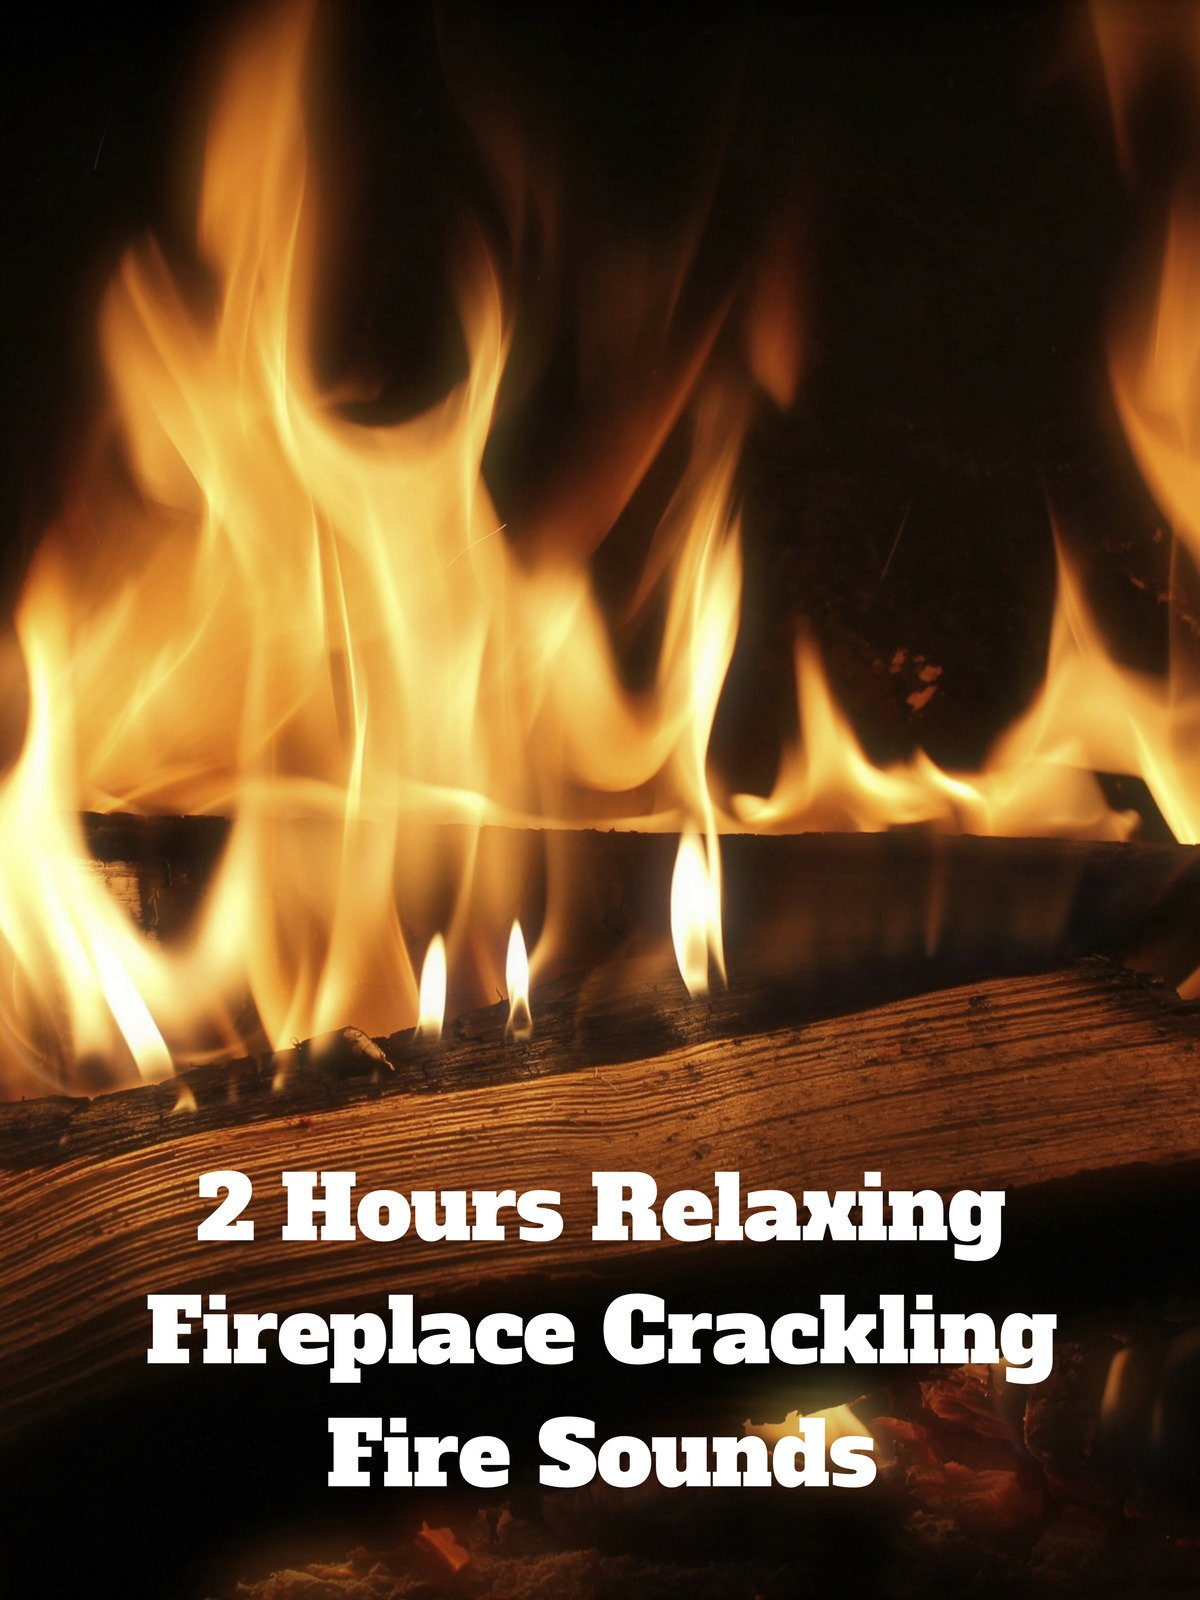 2 Hours Relaxing Fireplace Crackling Fire Sounds